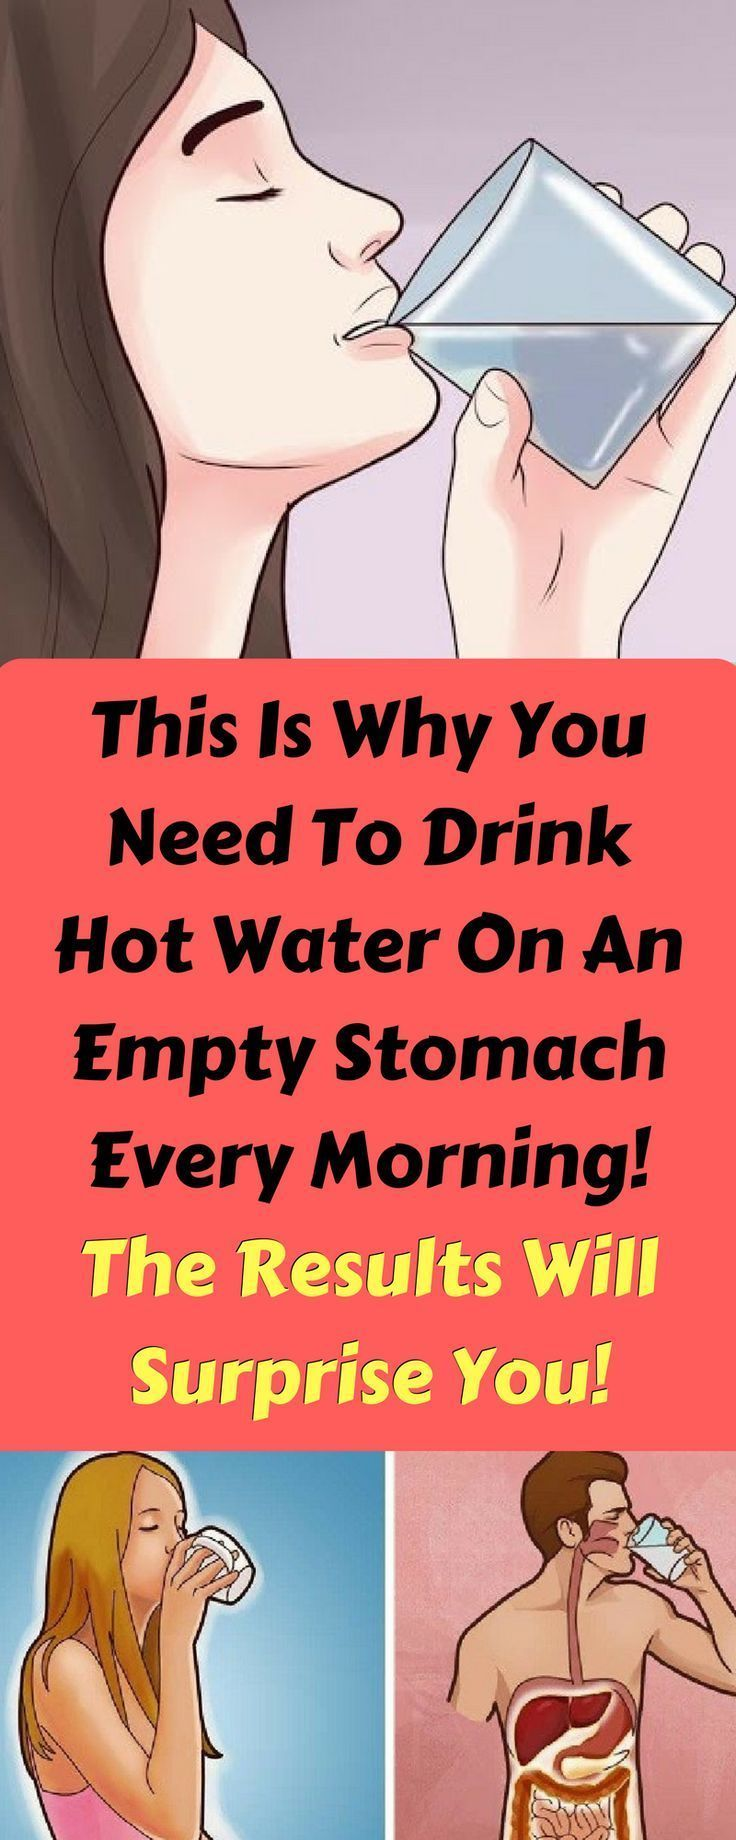 Image Result For This Is Why You Need To Drink Hot Water On An Empty Stomach Every Morning The Results Will Surprise You B Drinking Hot Water Health Stomach